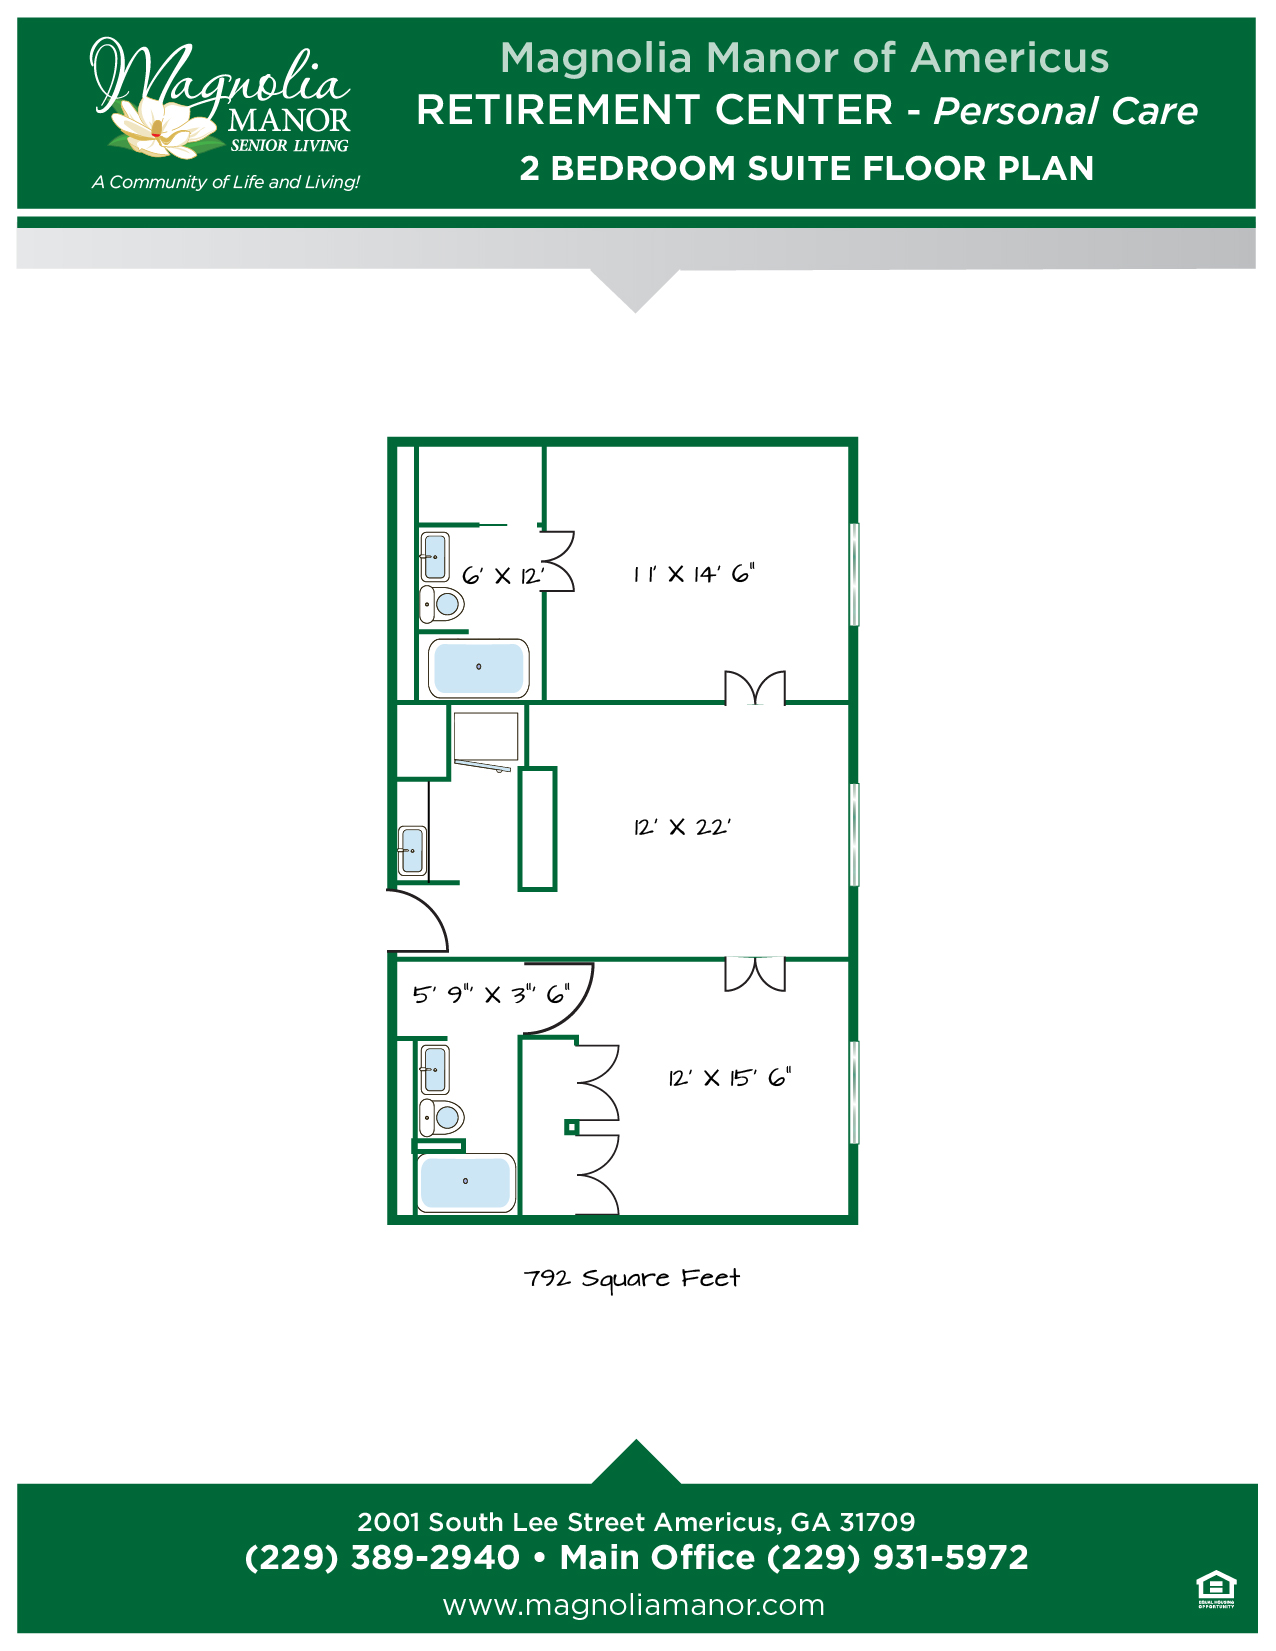 00344 AMERICUS Floor Plan RC 2 Bedroom Suite -01